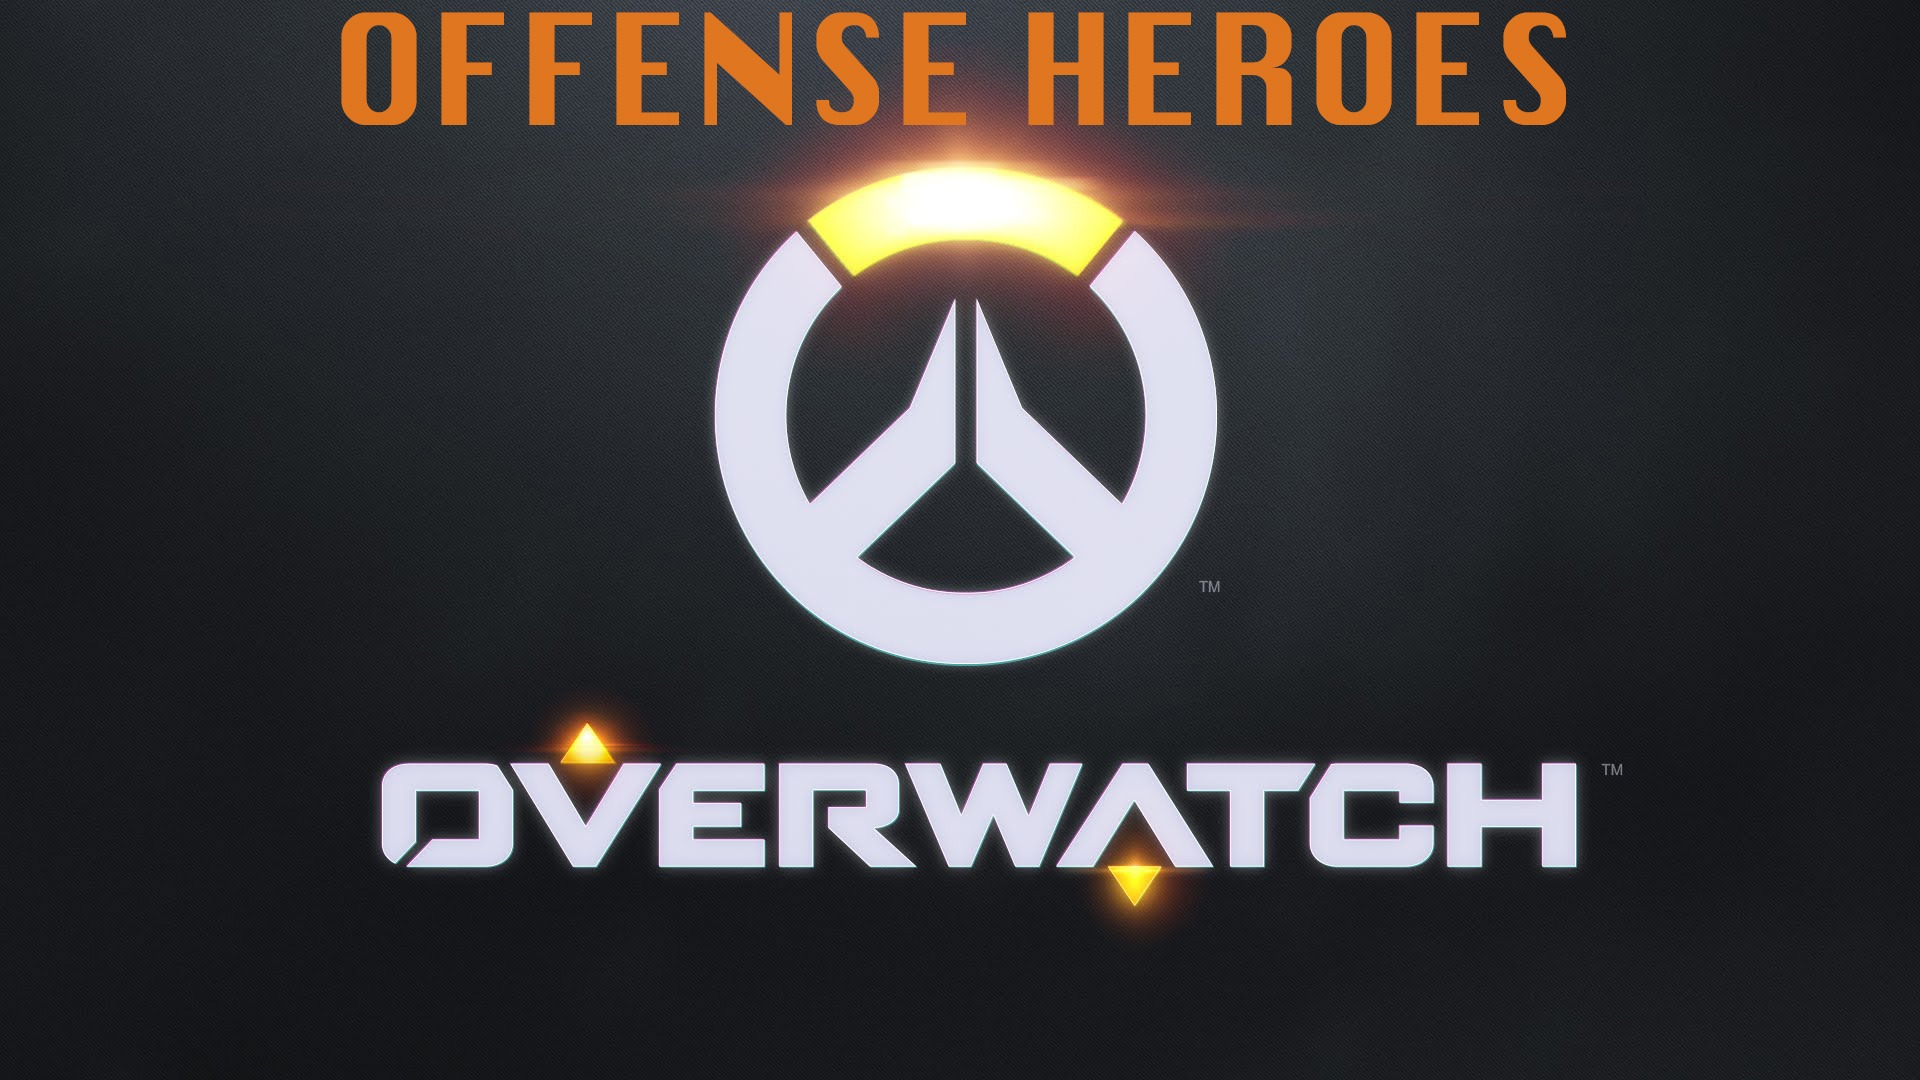 Best Overwatch Offense Heroes